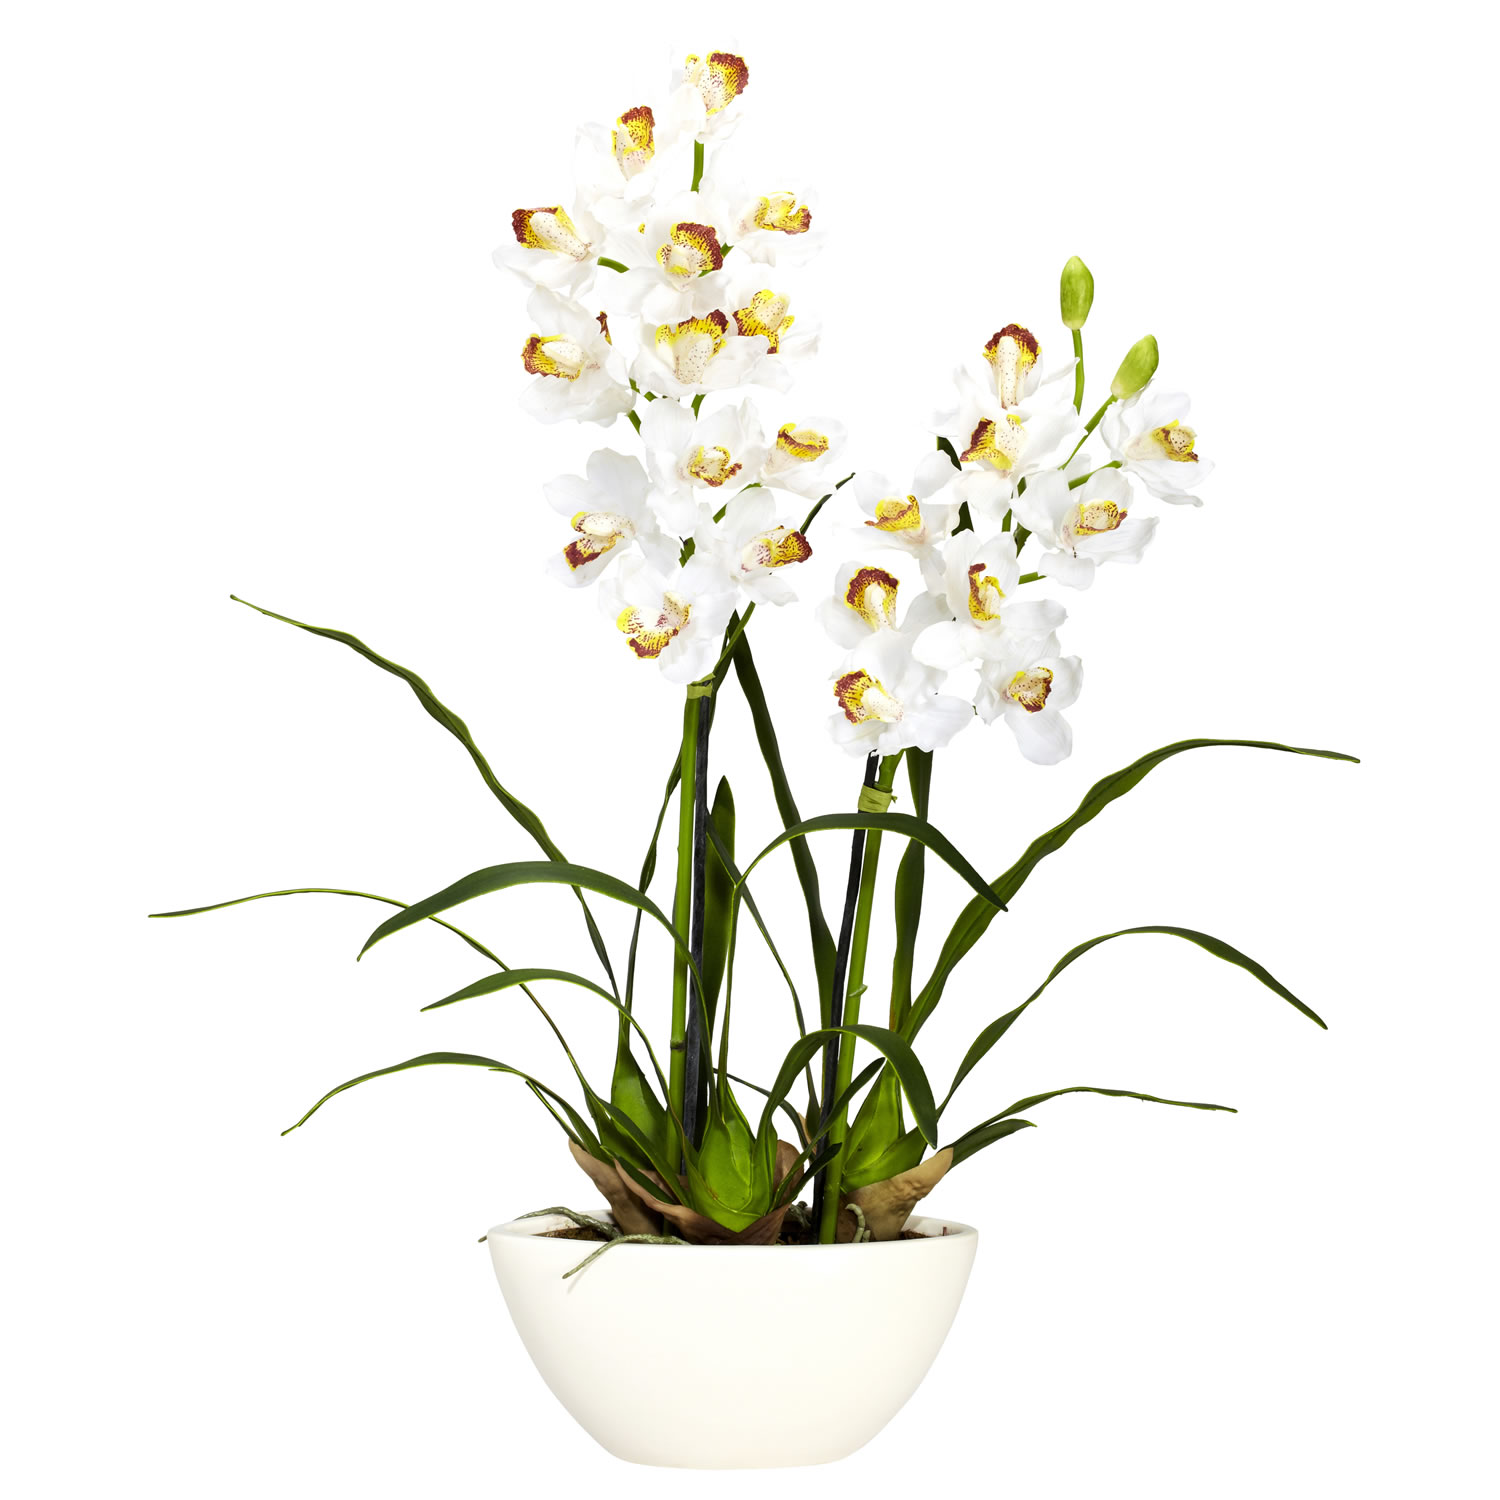 Cymbidium Wwhite Vase Silk Flower Arrangement Silk Specialties